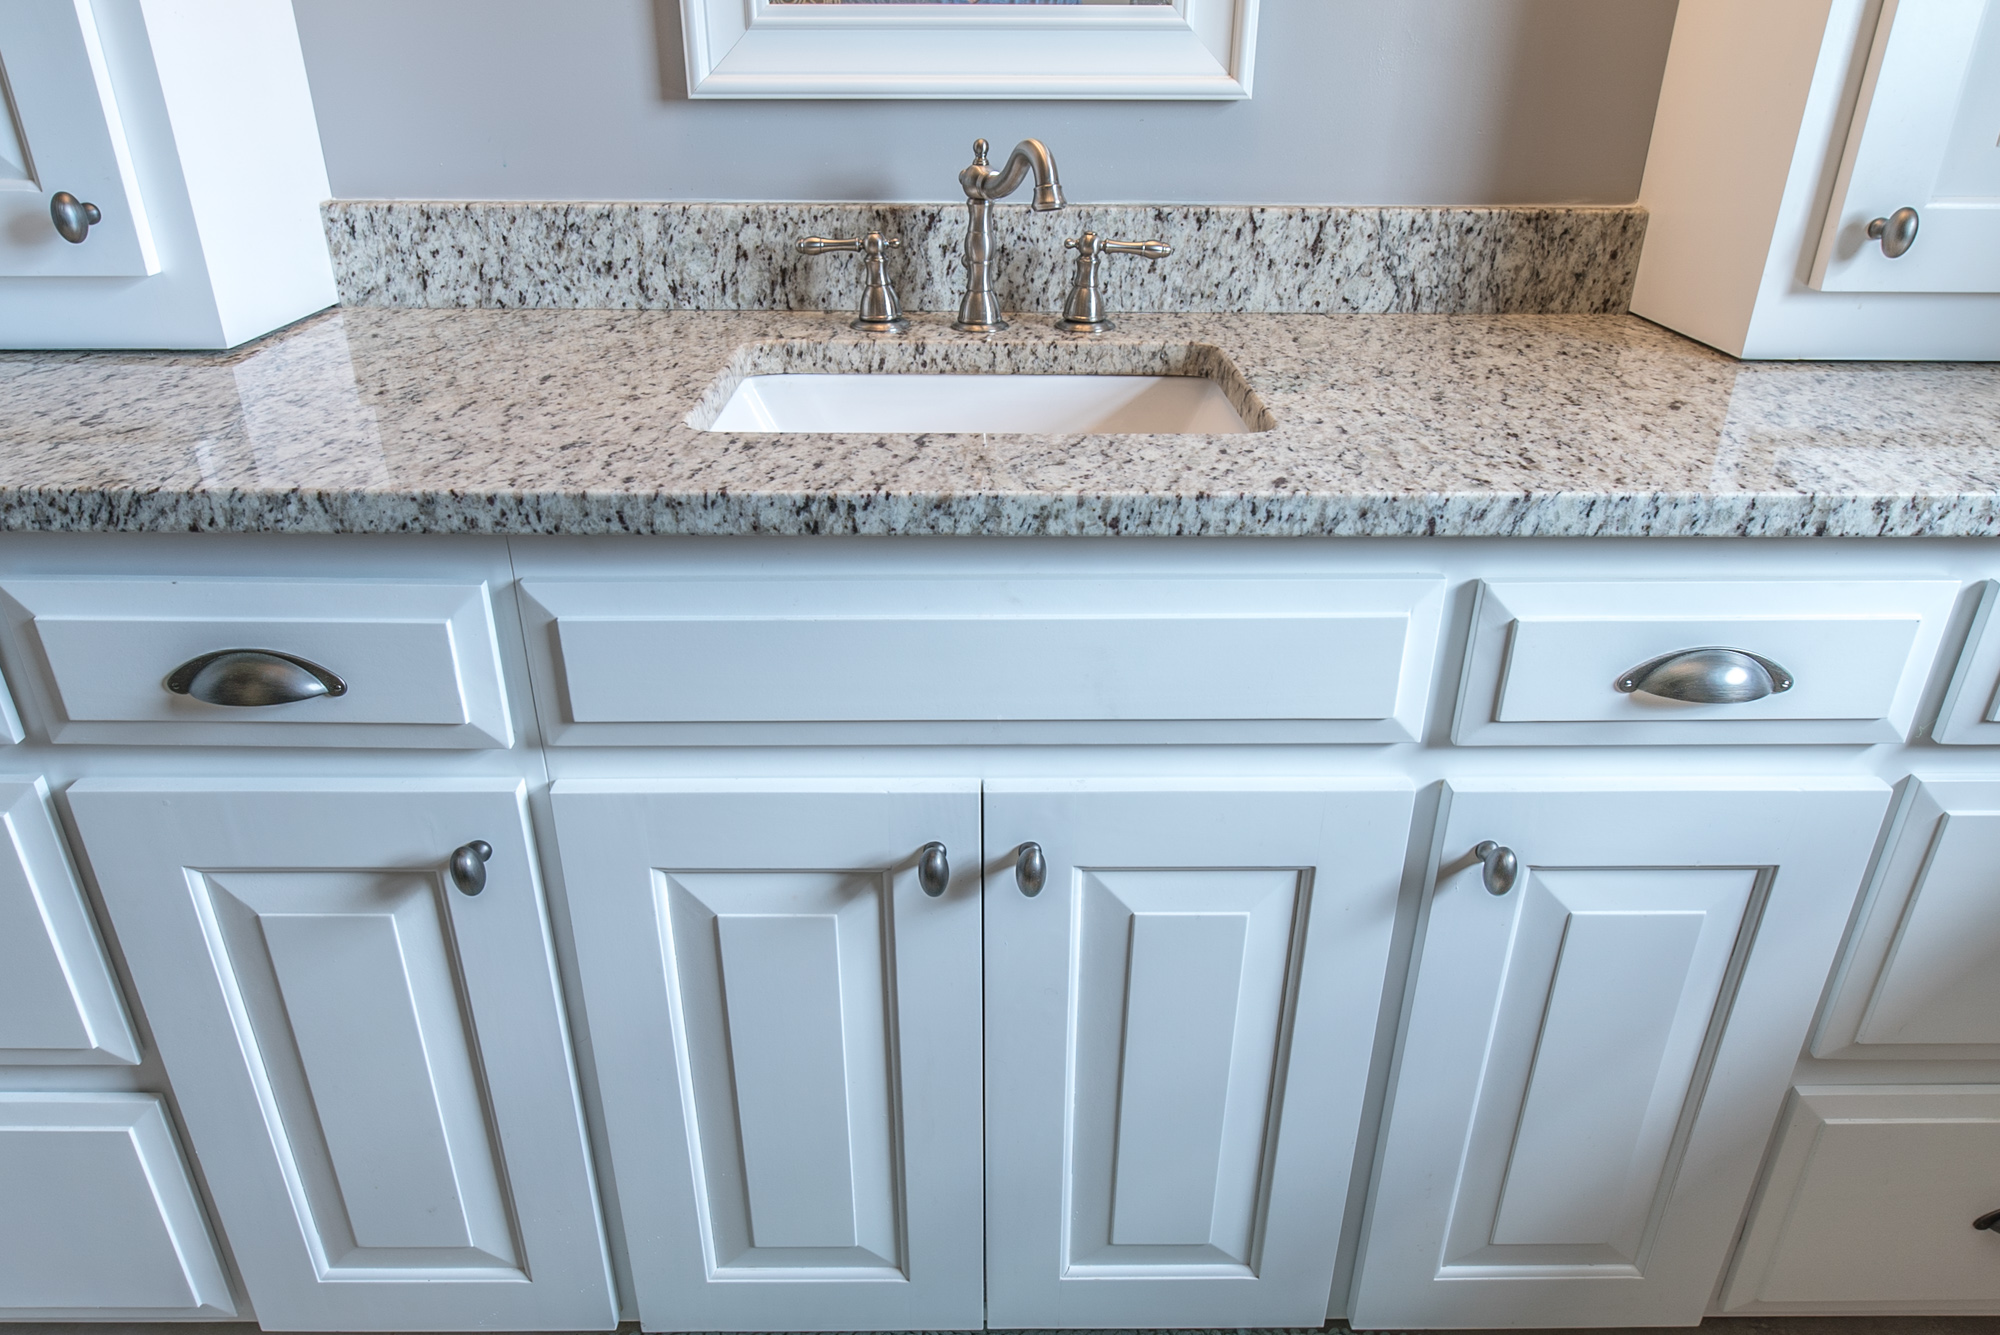 Bathroom Remodel Granite Counter With Backsplash And White Cabinets